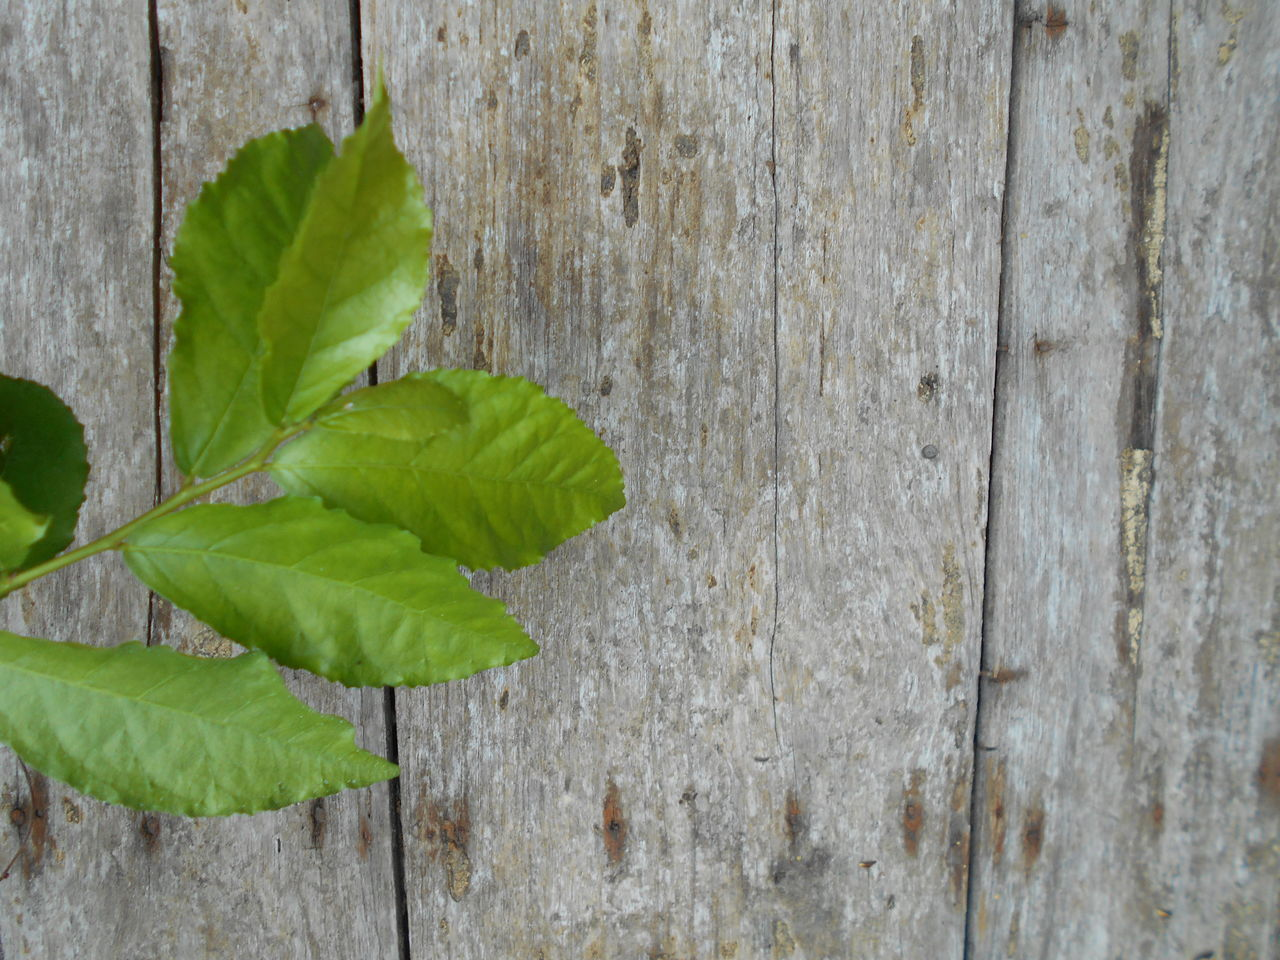 Close-Up Of Fresh Green Leaf On Wood